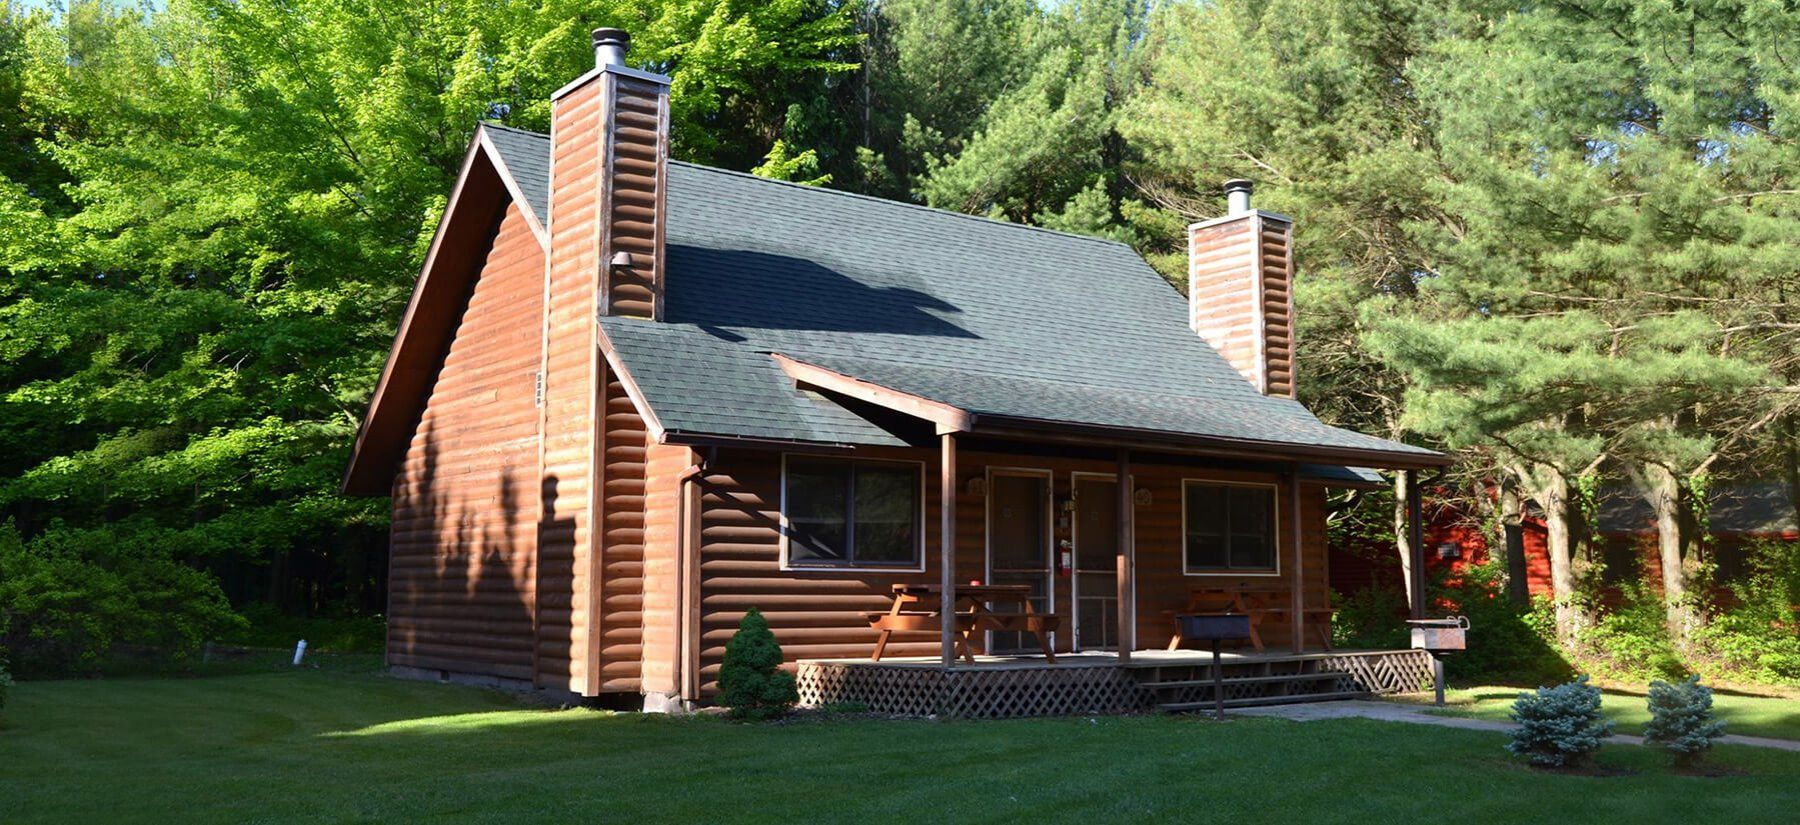 1 rated wisconsin dells cabins your wisconsin dells